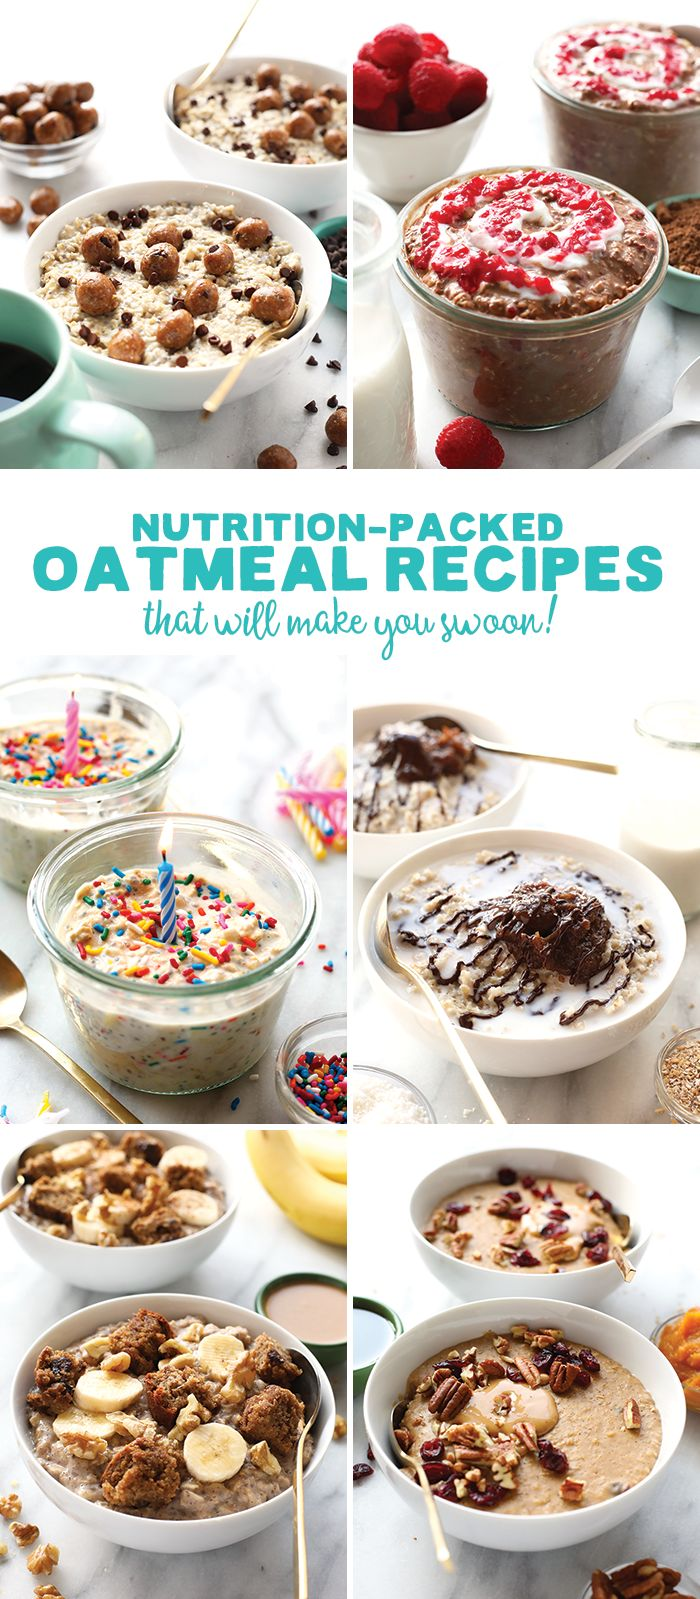 Make one of these Nutrition-Packed Oatmeal Recipes for a hearty breakfast packed with whole grains and healthy carbs!